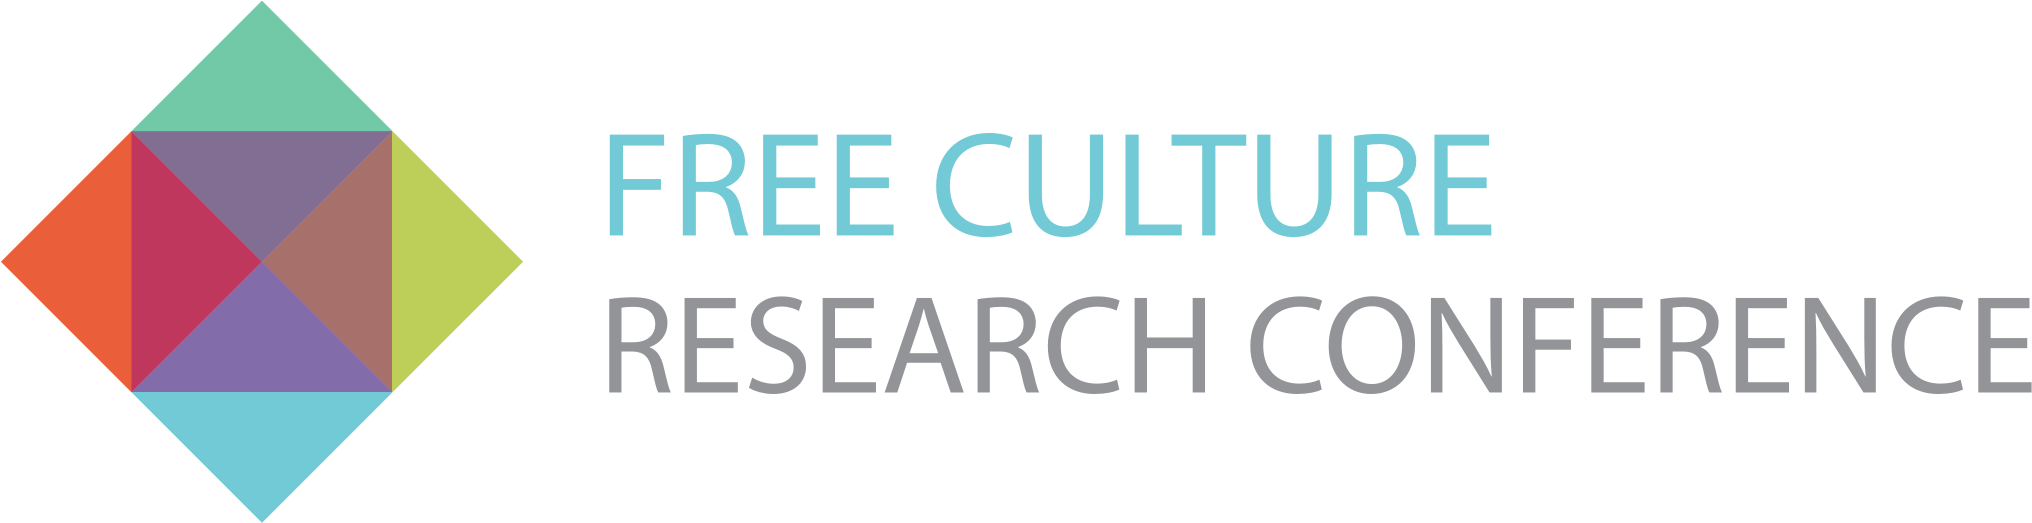 Free Culture Research Conference Logo  by hank0071